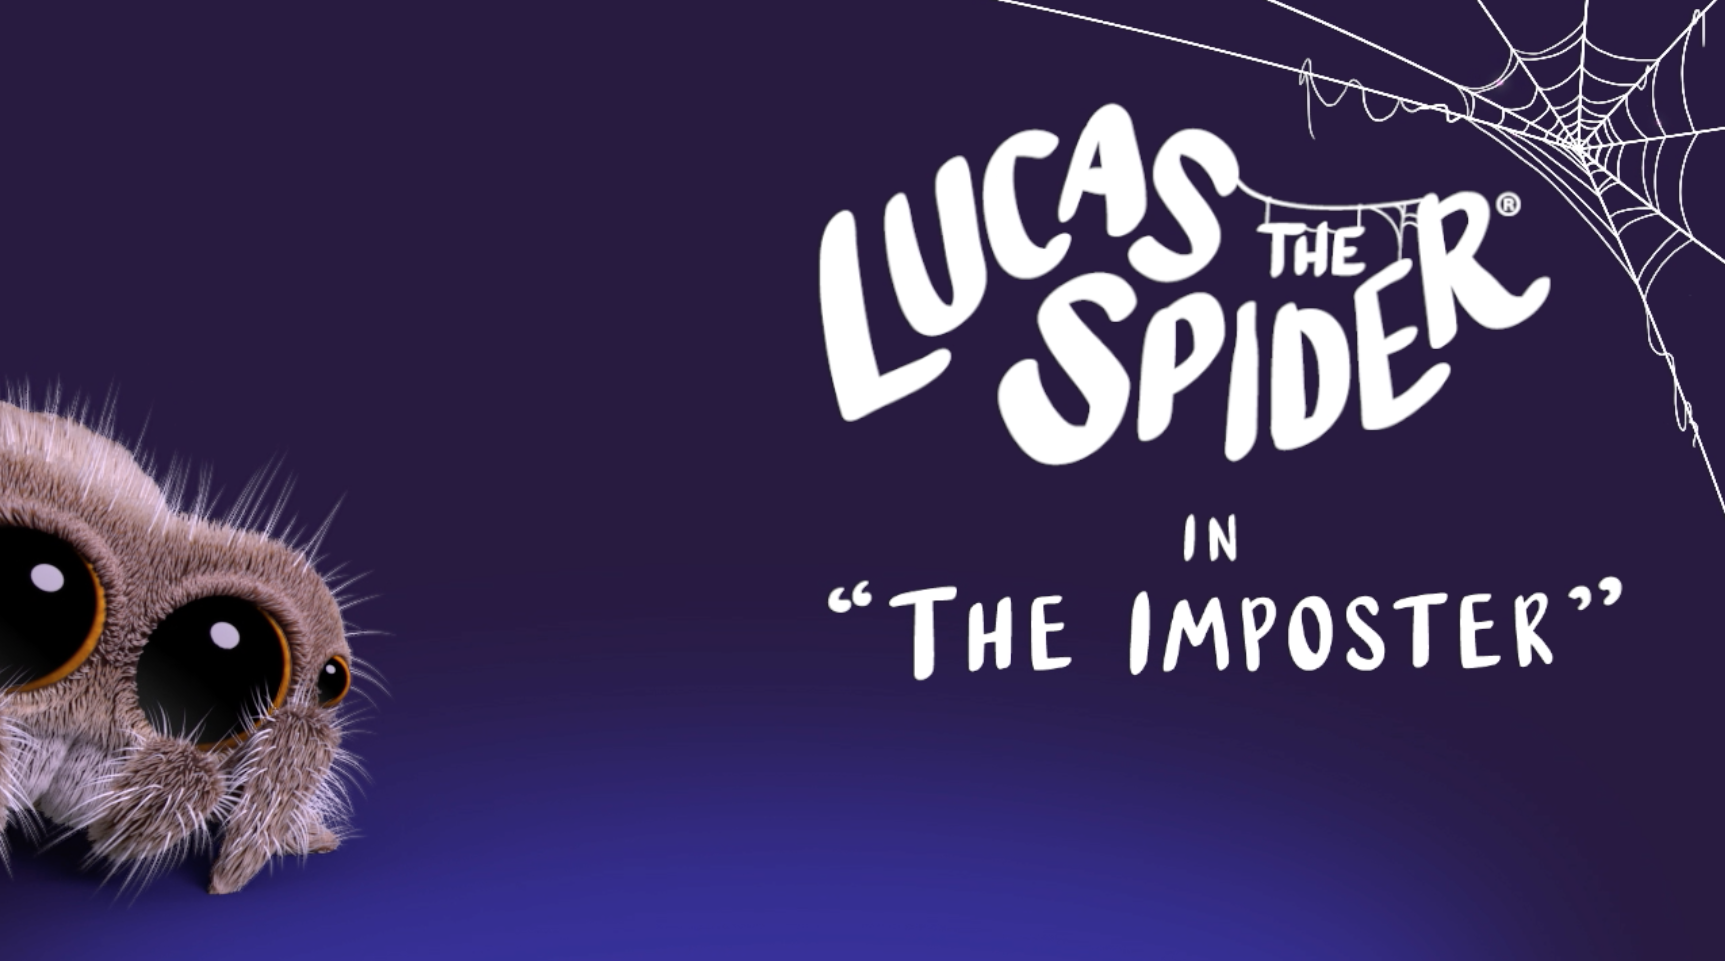 Lucas the Spider - The Imposter